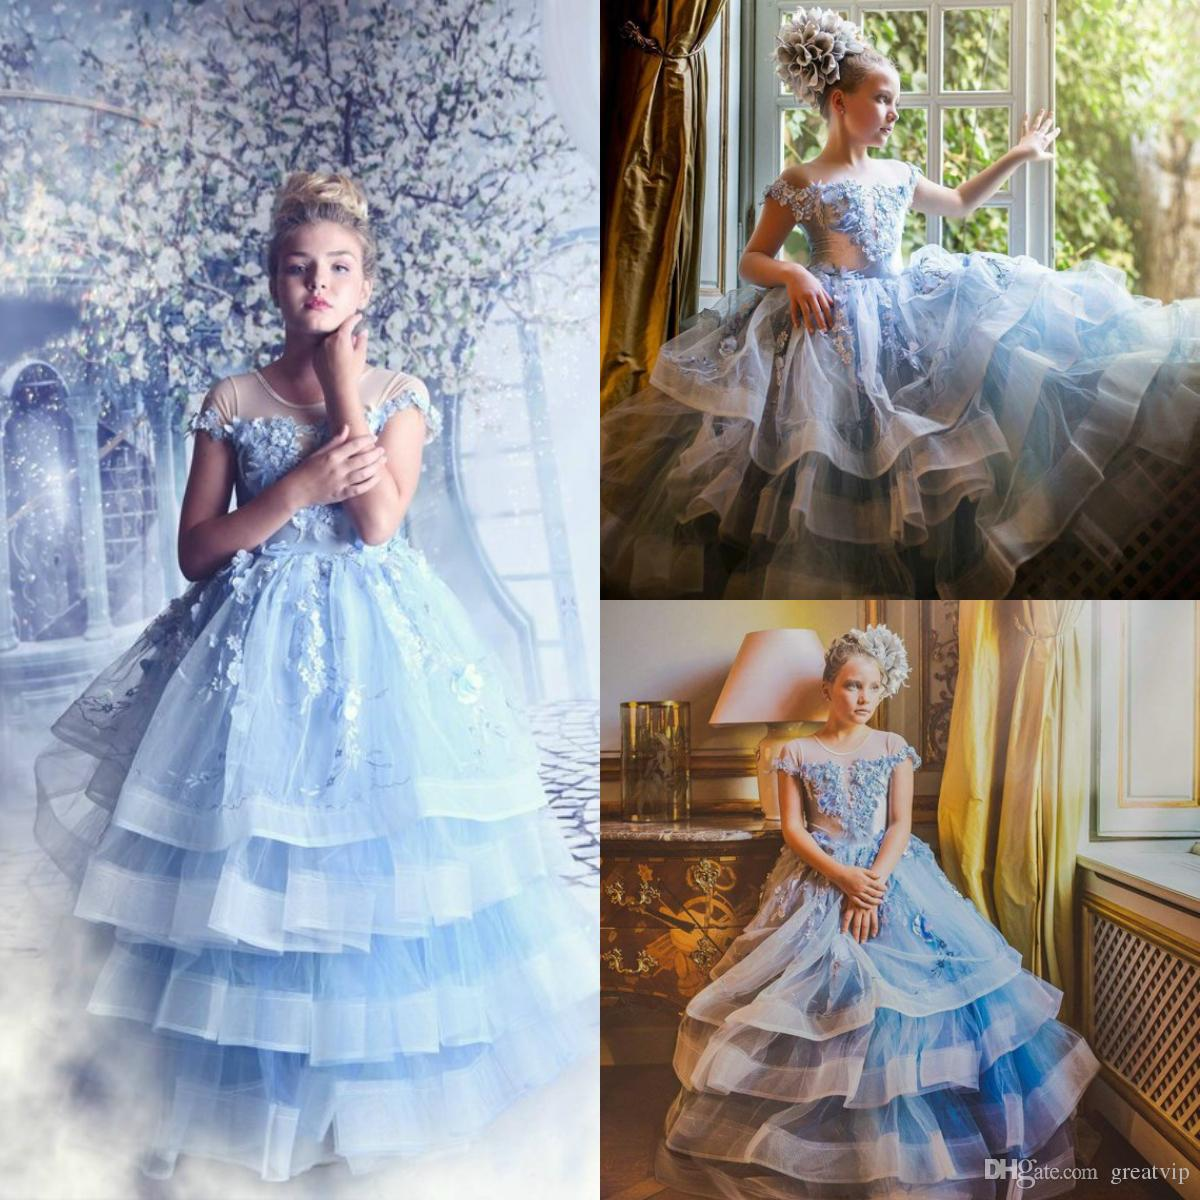 Blue Pageant Flowers Girls Dresses 3D Floral Applique Beads Layered Tulle Teens Princess Birthday Party Dress Princess Weddnig Prom Gowns